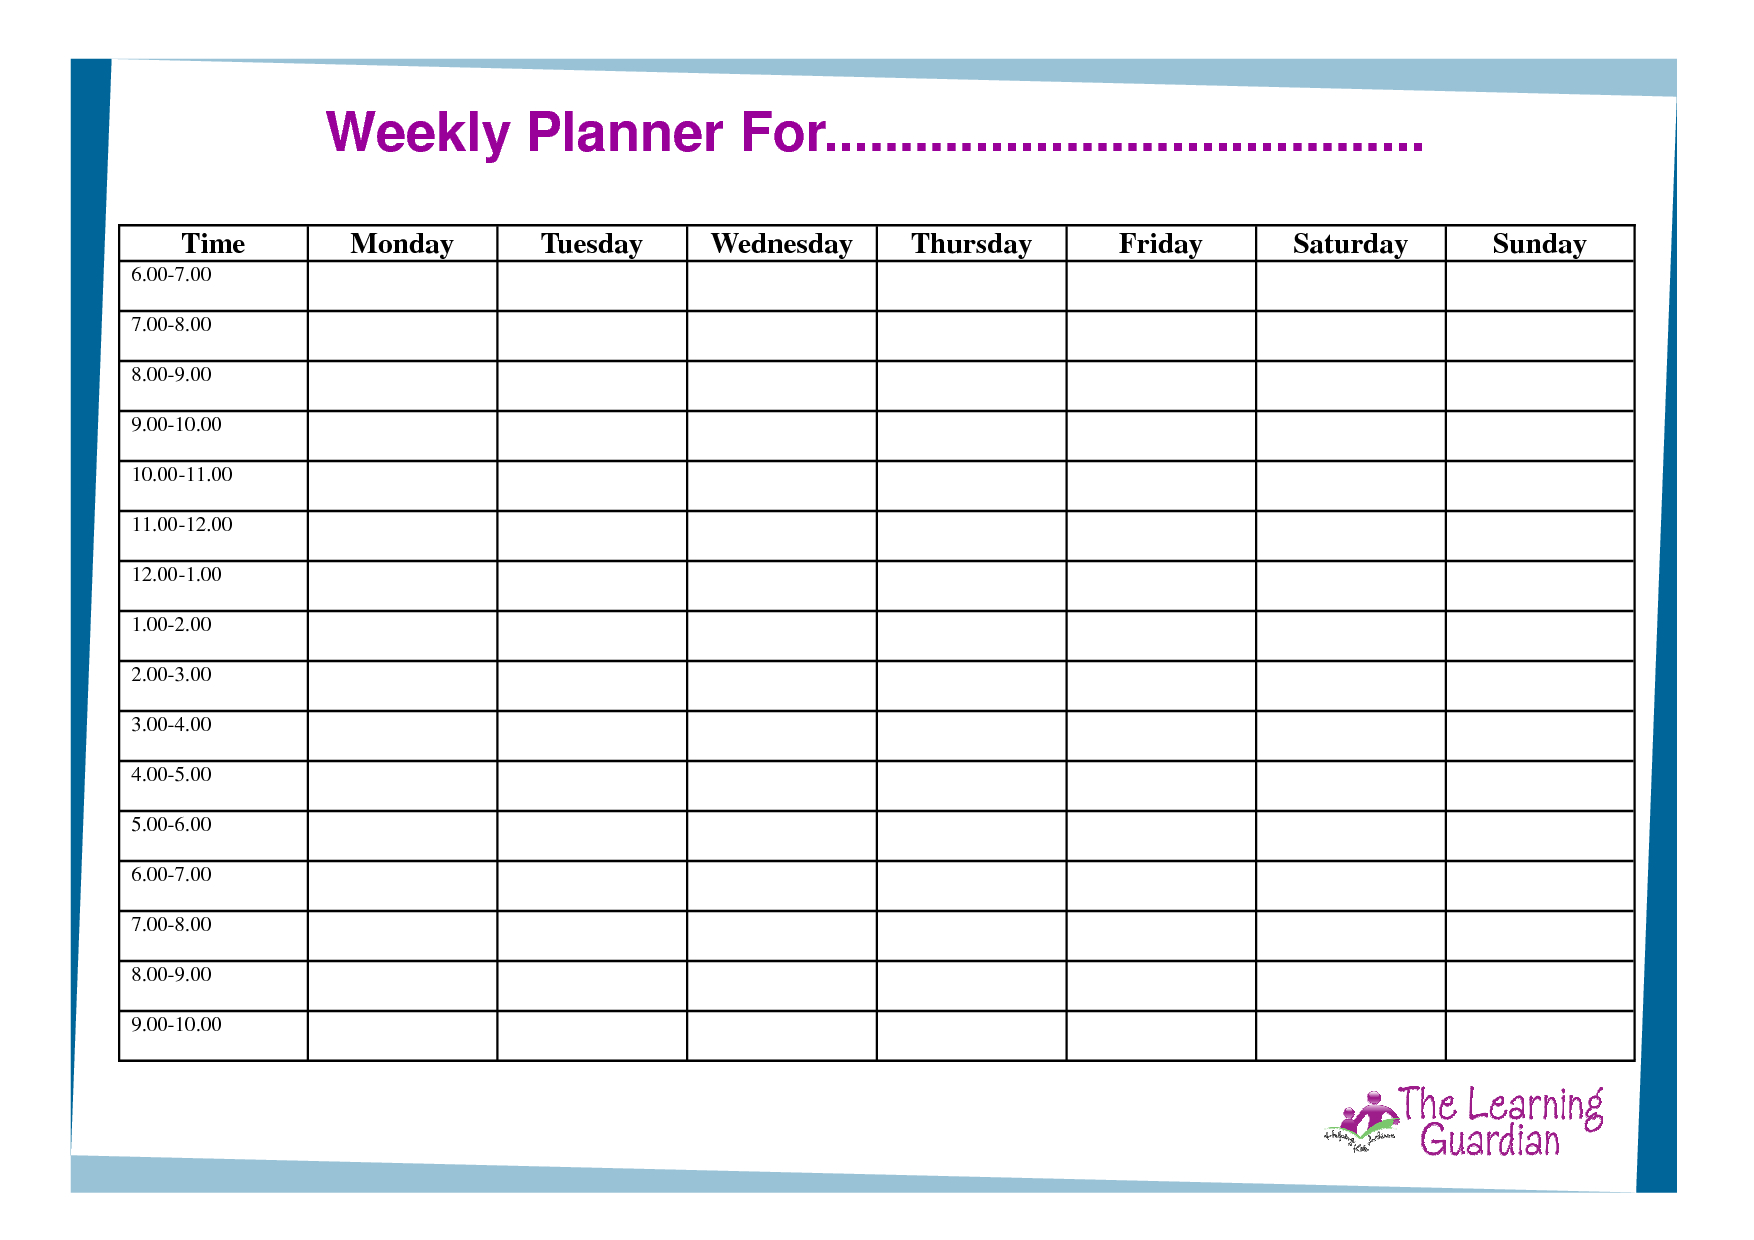 Free Printable Weekly Calendar Templates | Weekly Planner regarding Monday To Sunday Calendar Template